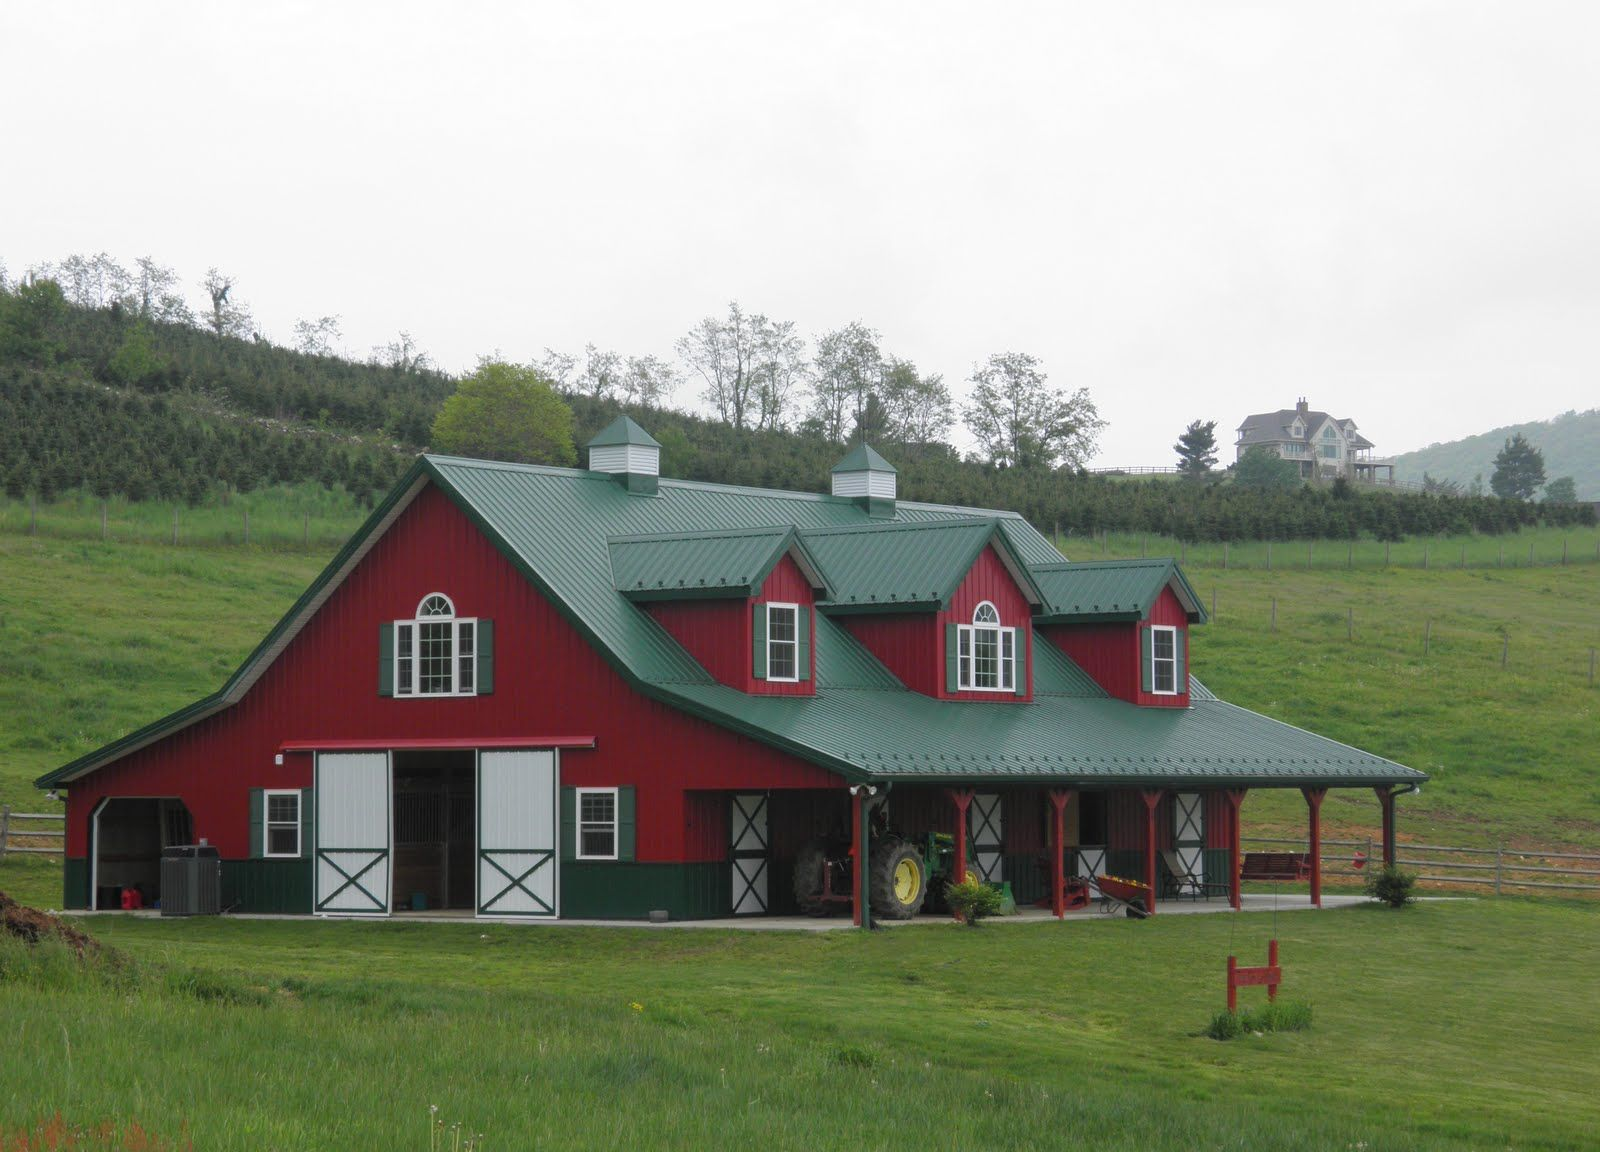 House that looks like red barn images at home in the for Metal pole barn house plans